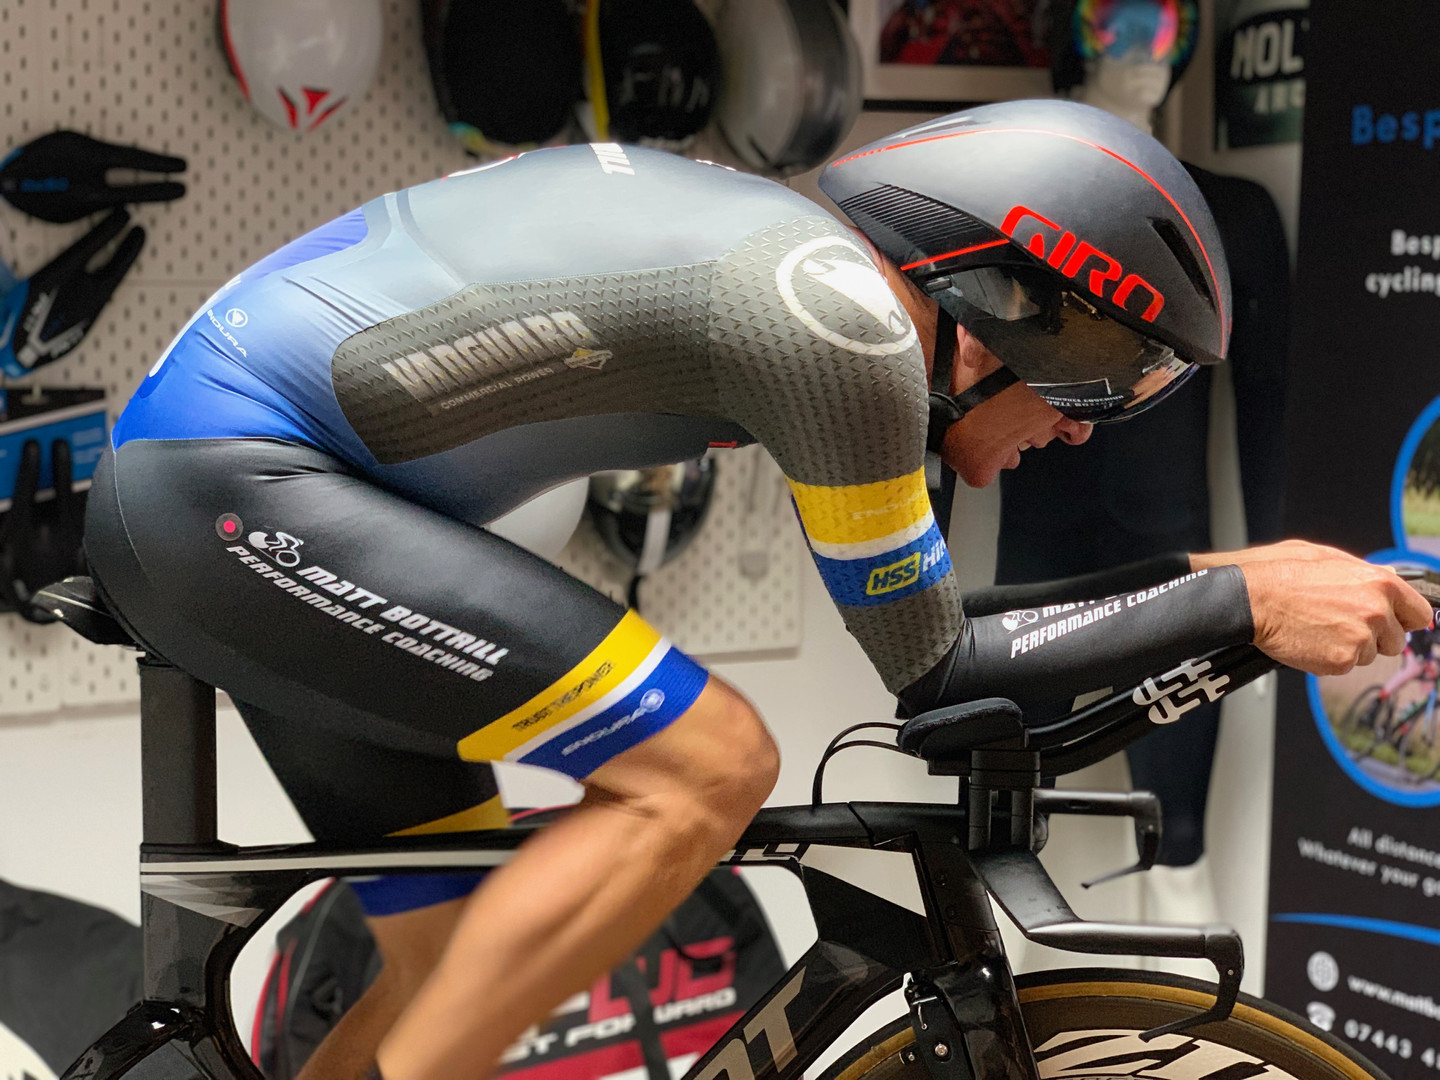 professional bike fitting leicester - athlete on bike